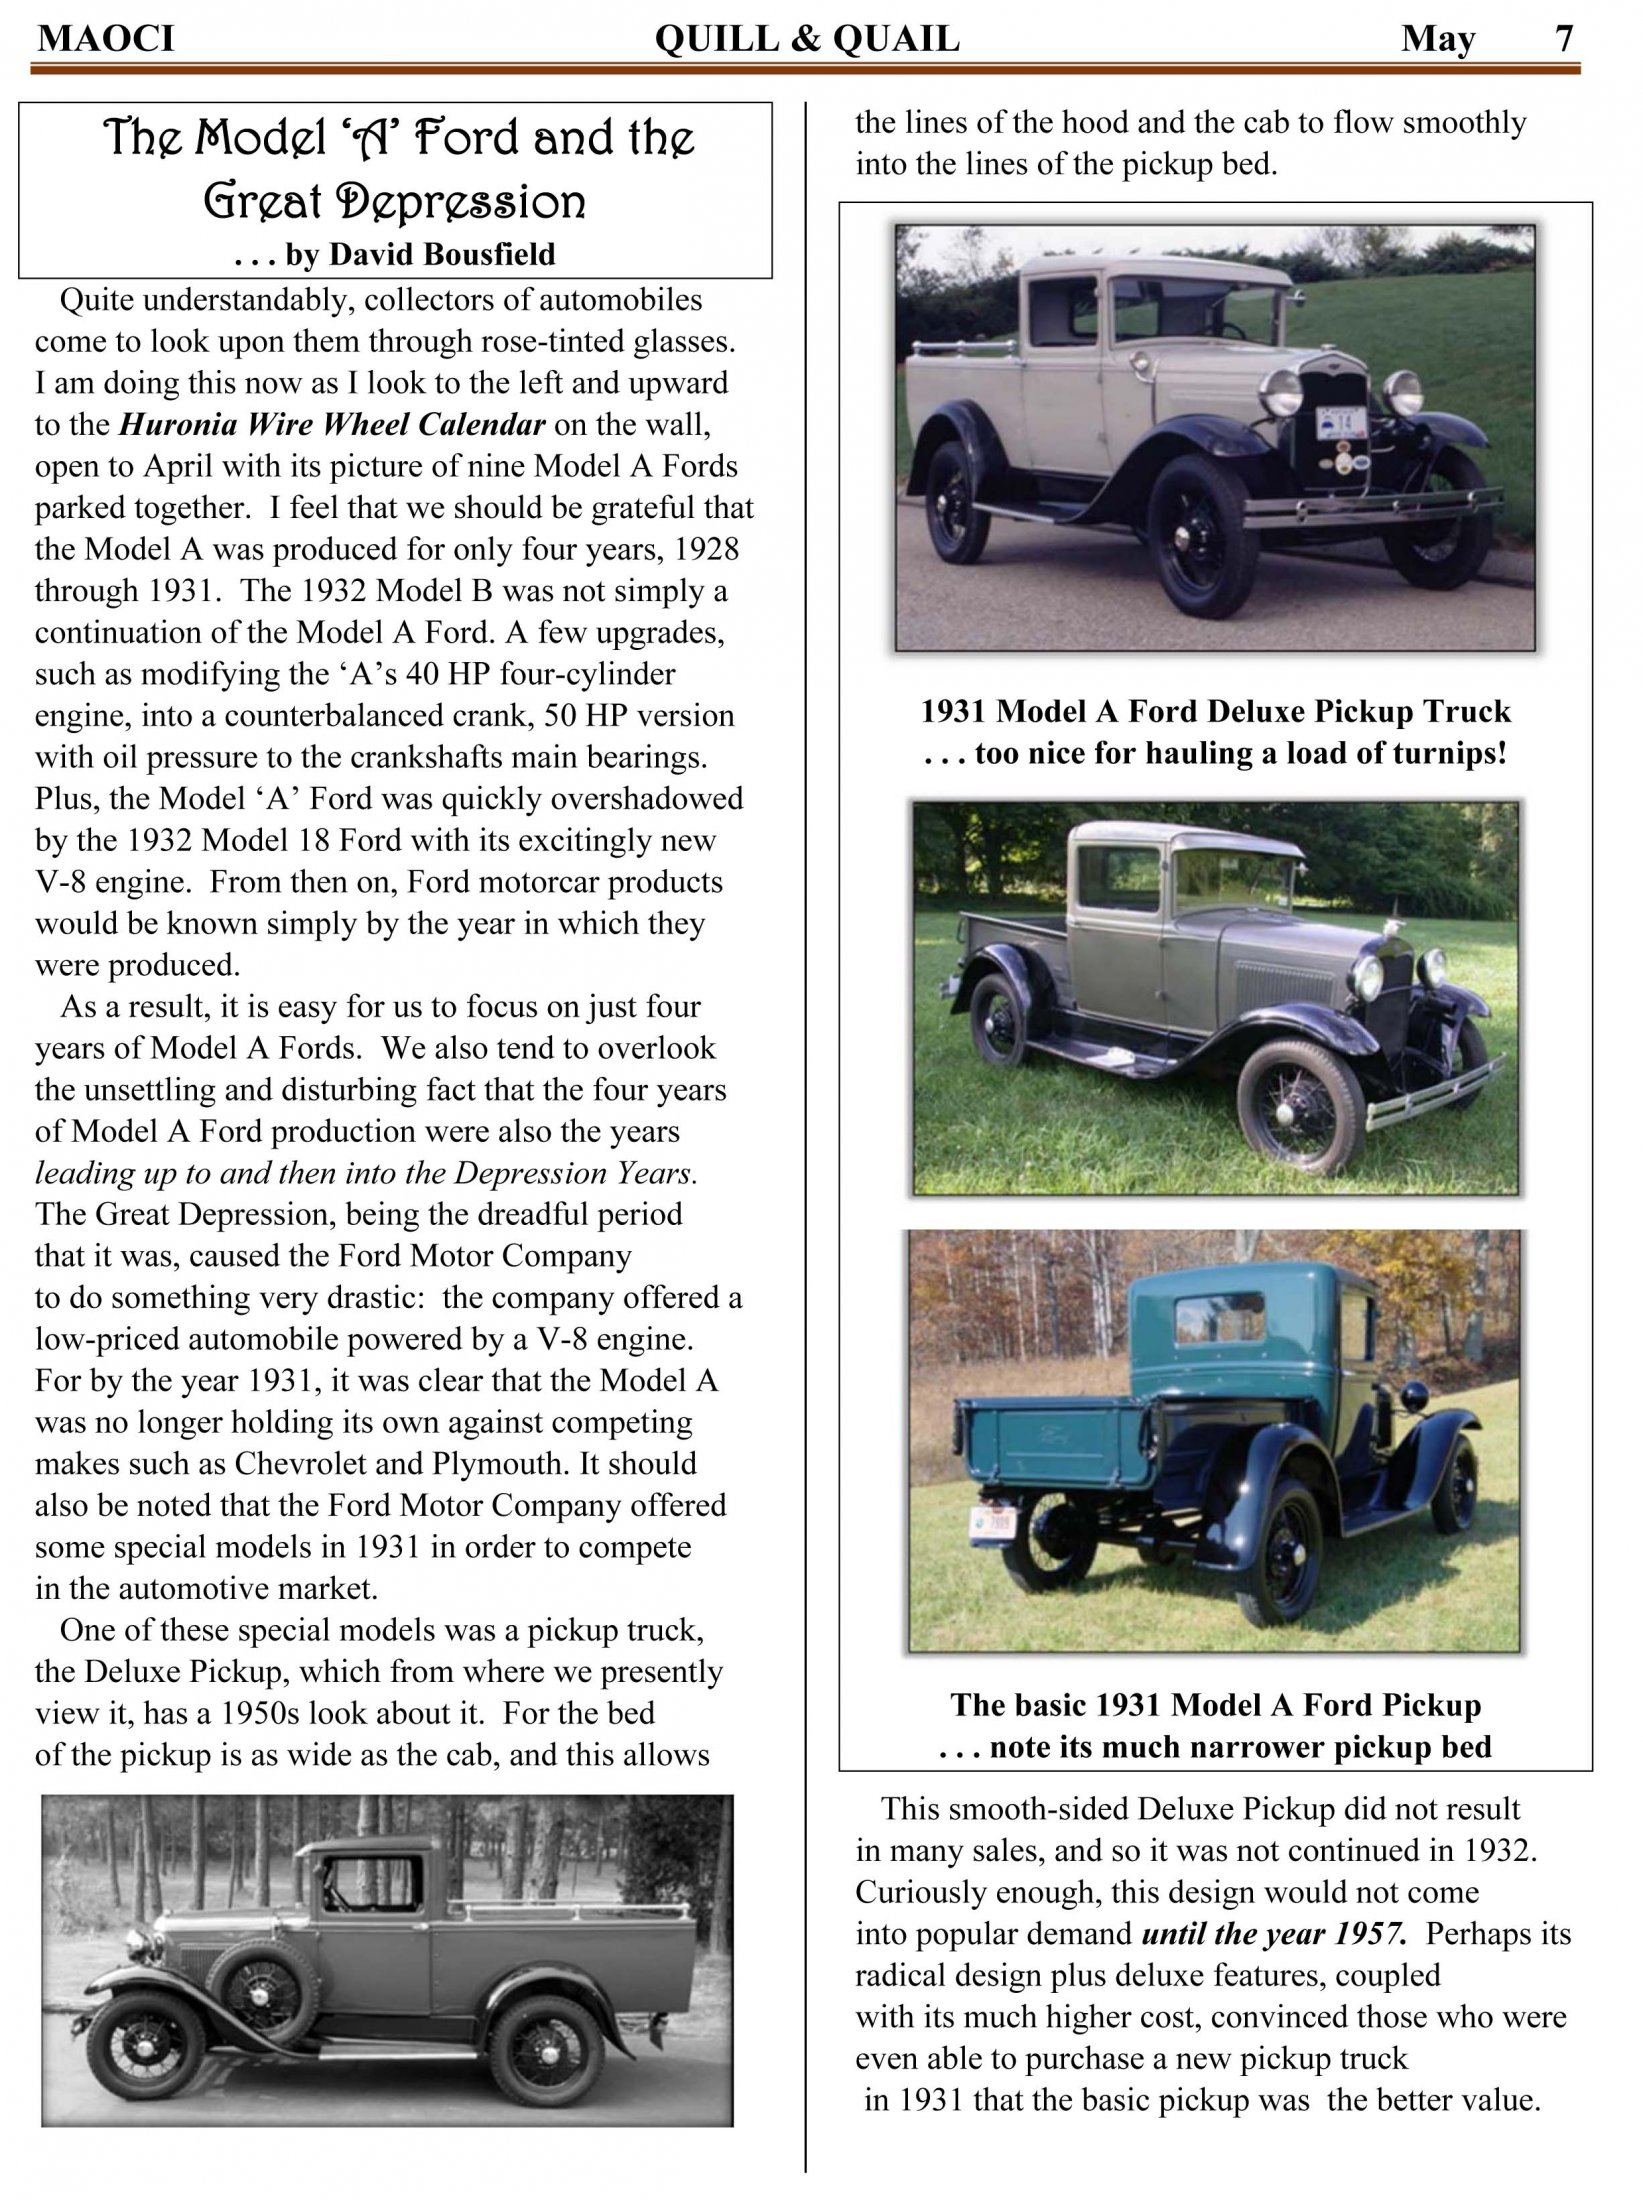 The History Of Ford And The 20 Million Model A In 2018 May Q&Q-5